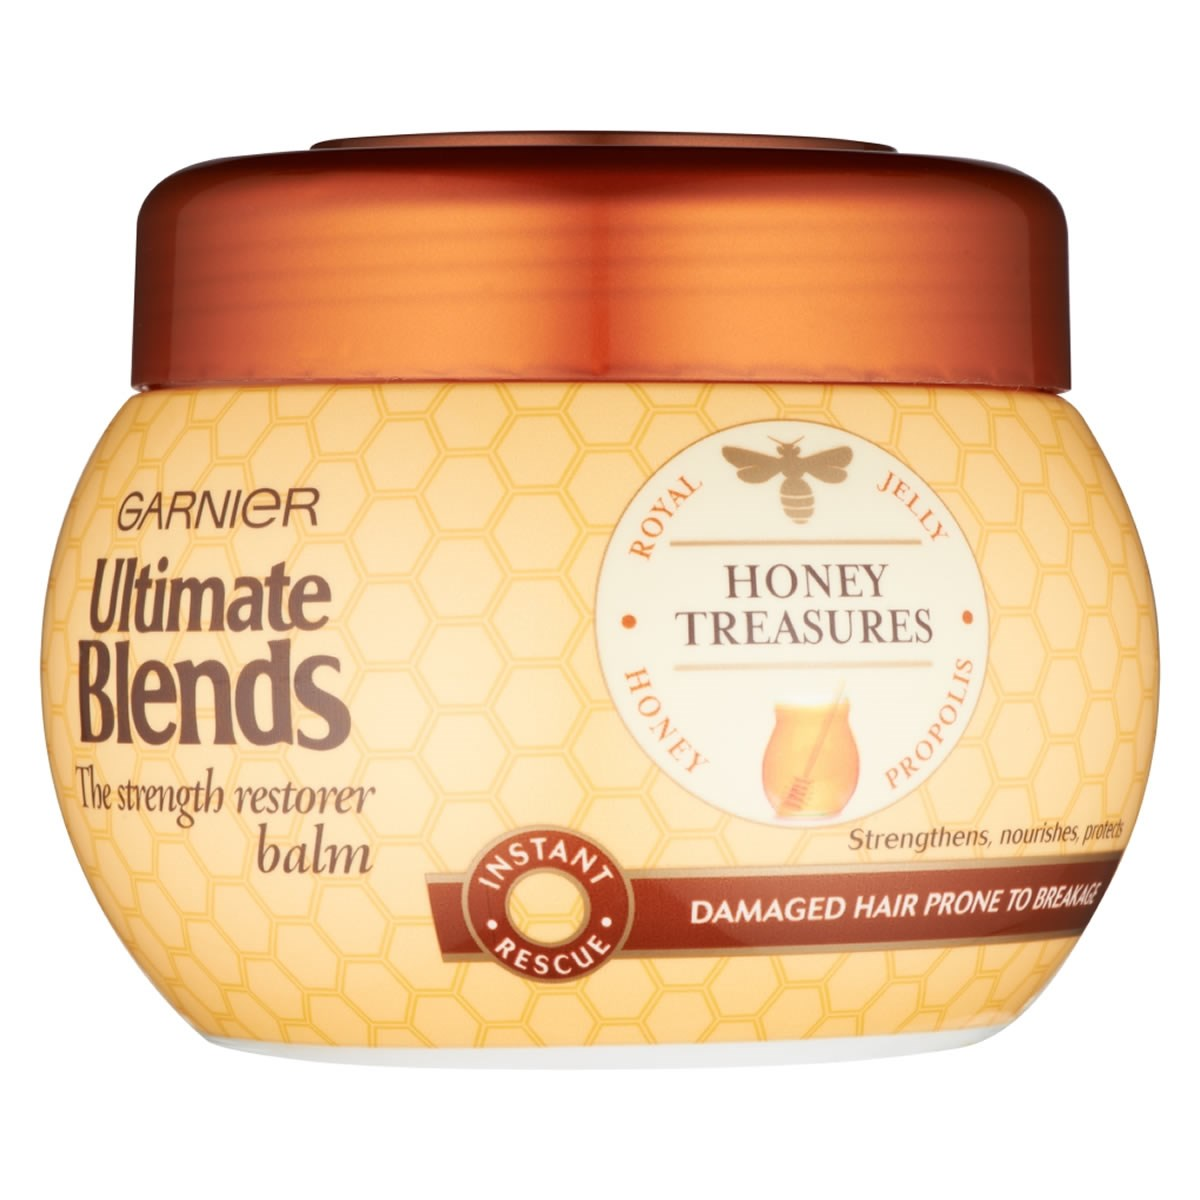 Garnier Ultimate Blends Honey Treasures Mask